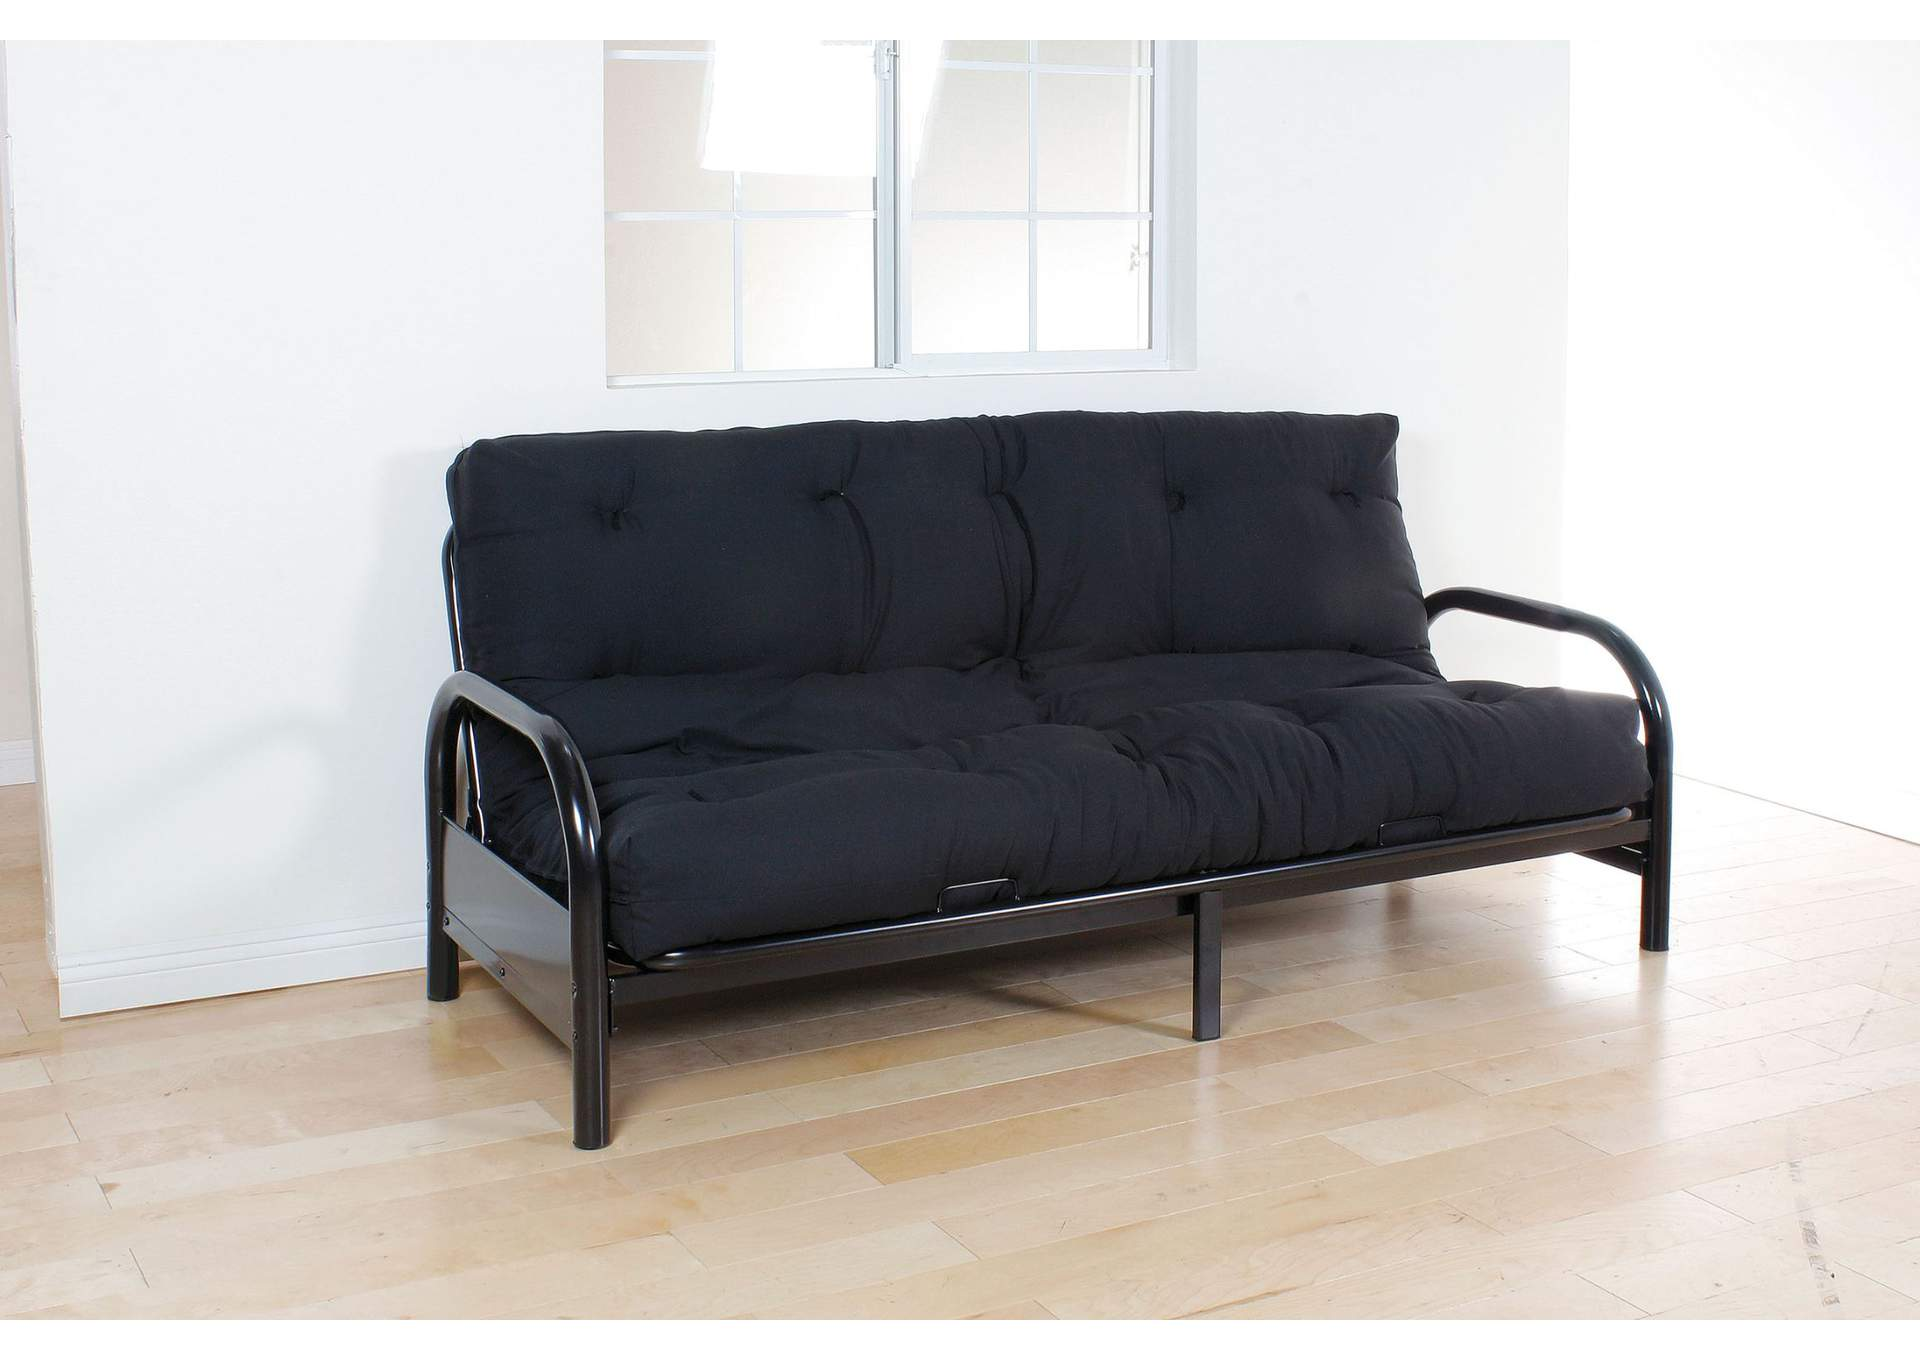 Nabila Black Full Futon Mattress 6 H Best Buy Furniture And Mattress